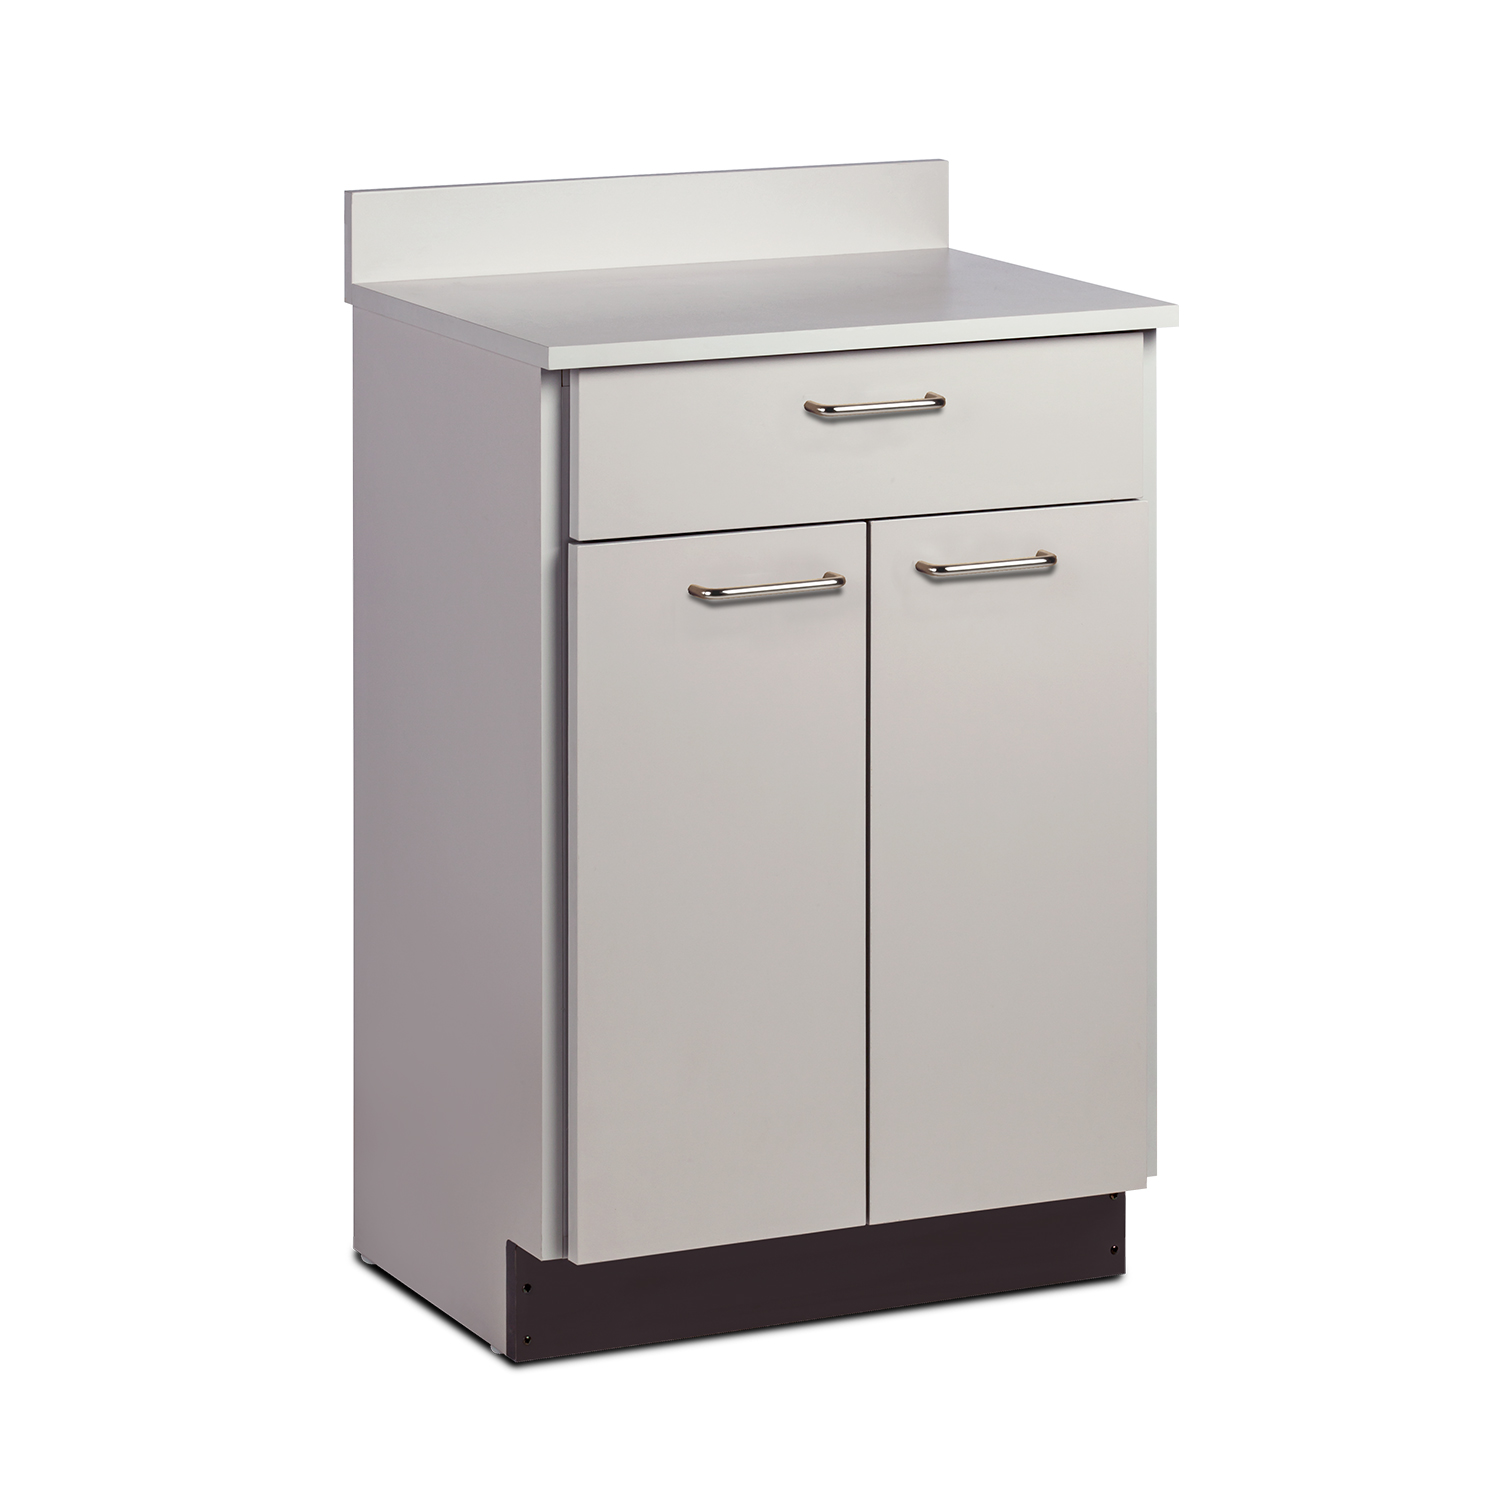 Clinton Treatment Cabinet with 2 Doors and 1 Drawer